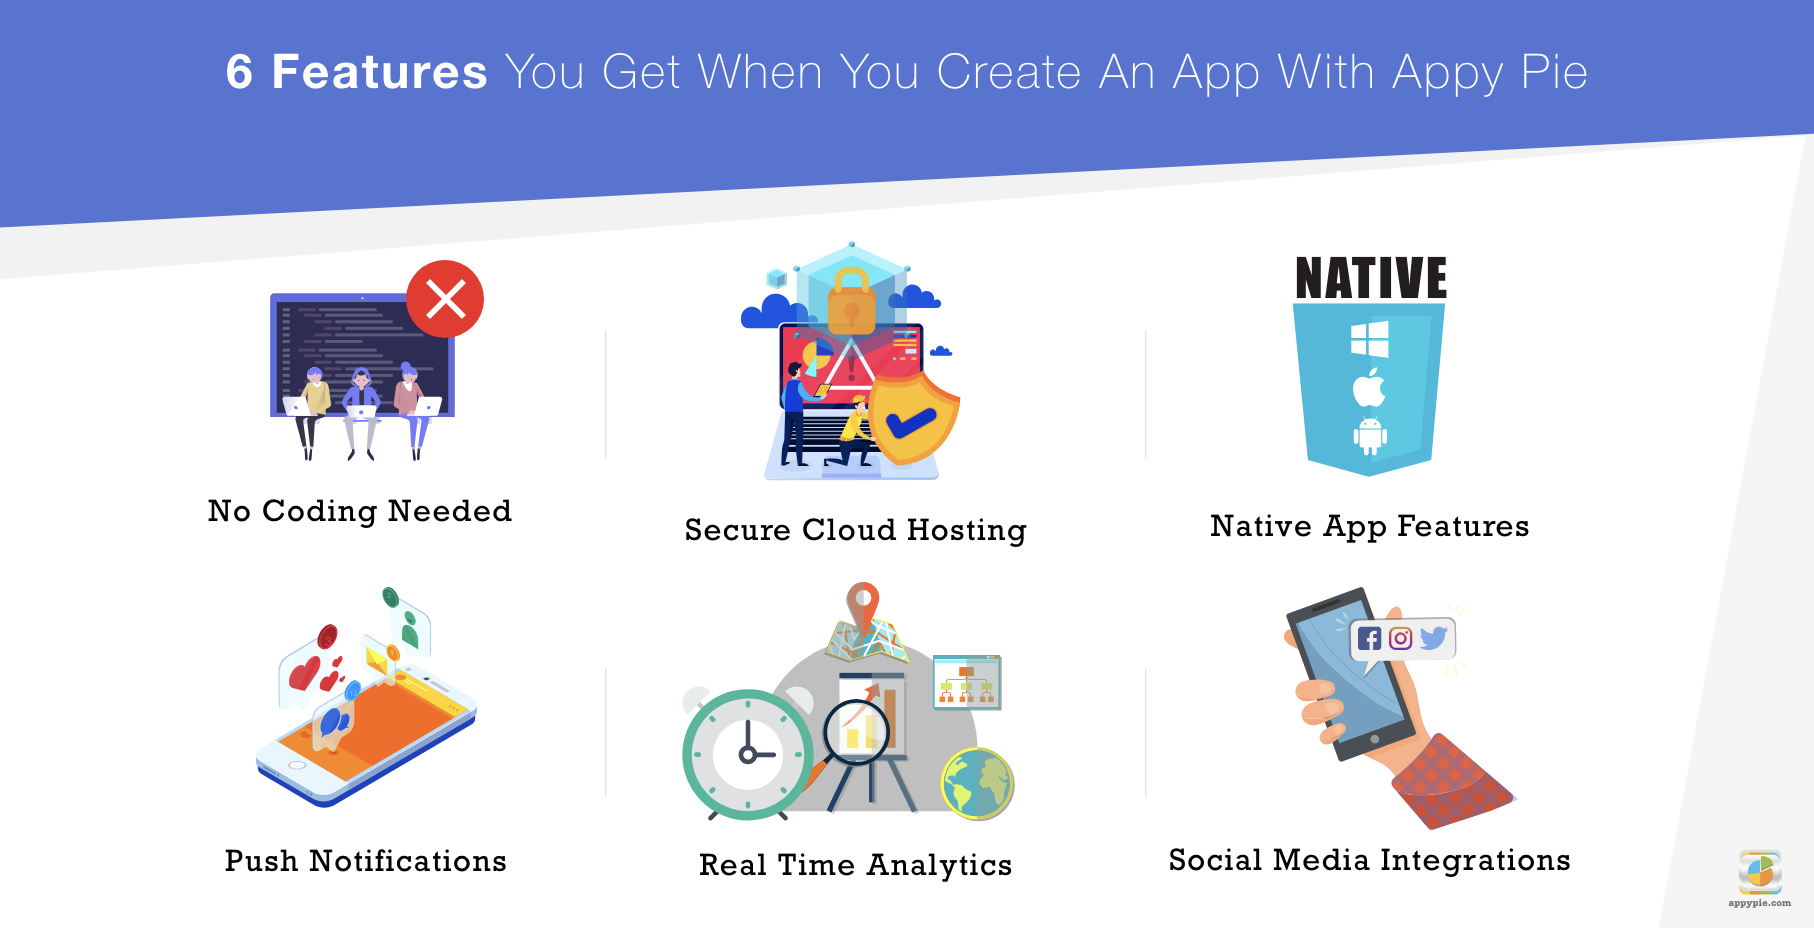 With Appy Pie's App Builder, no need to install or